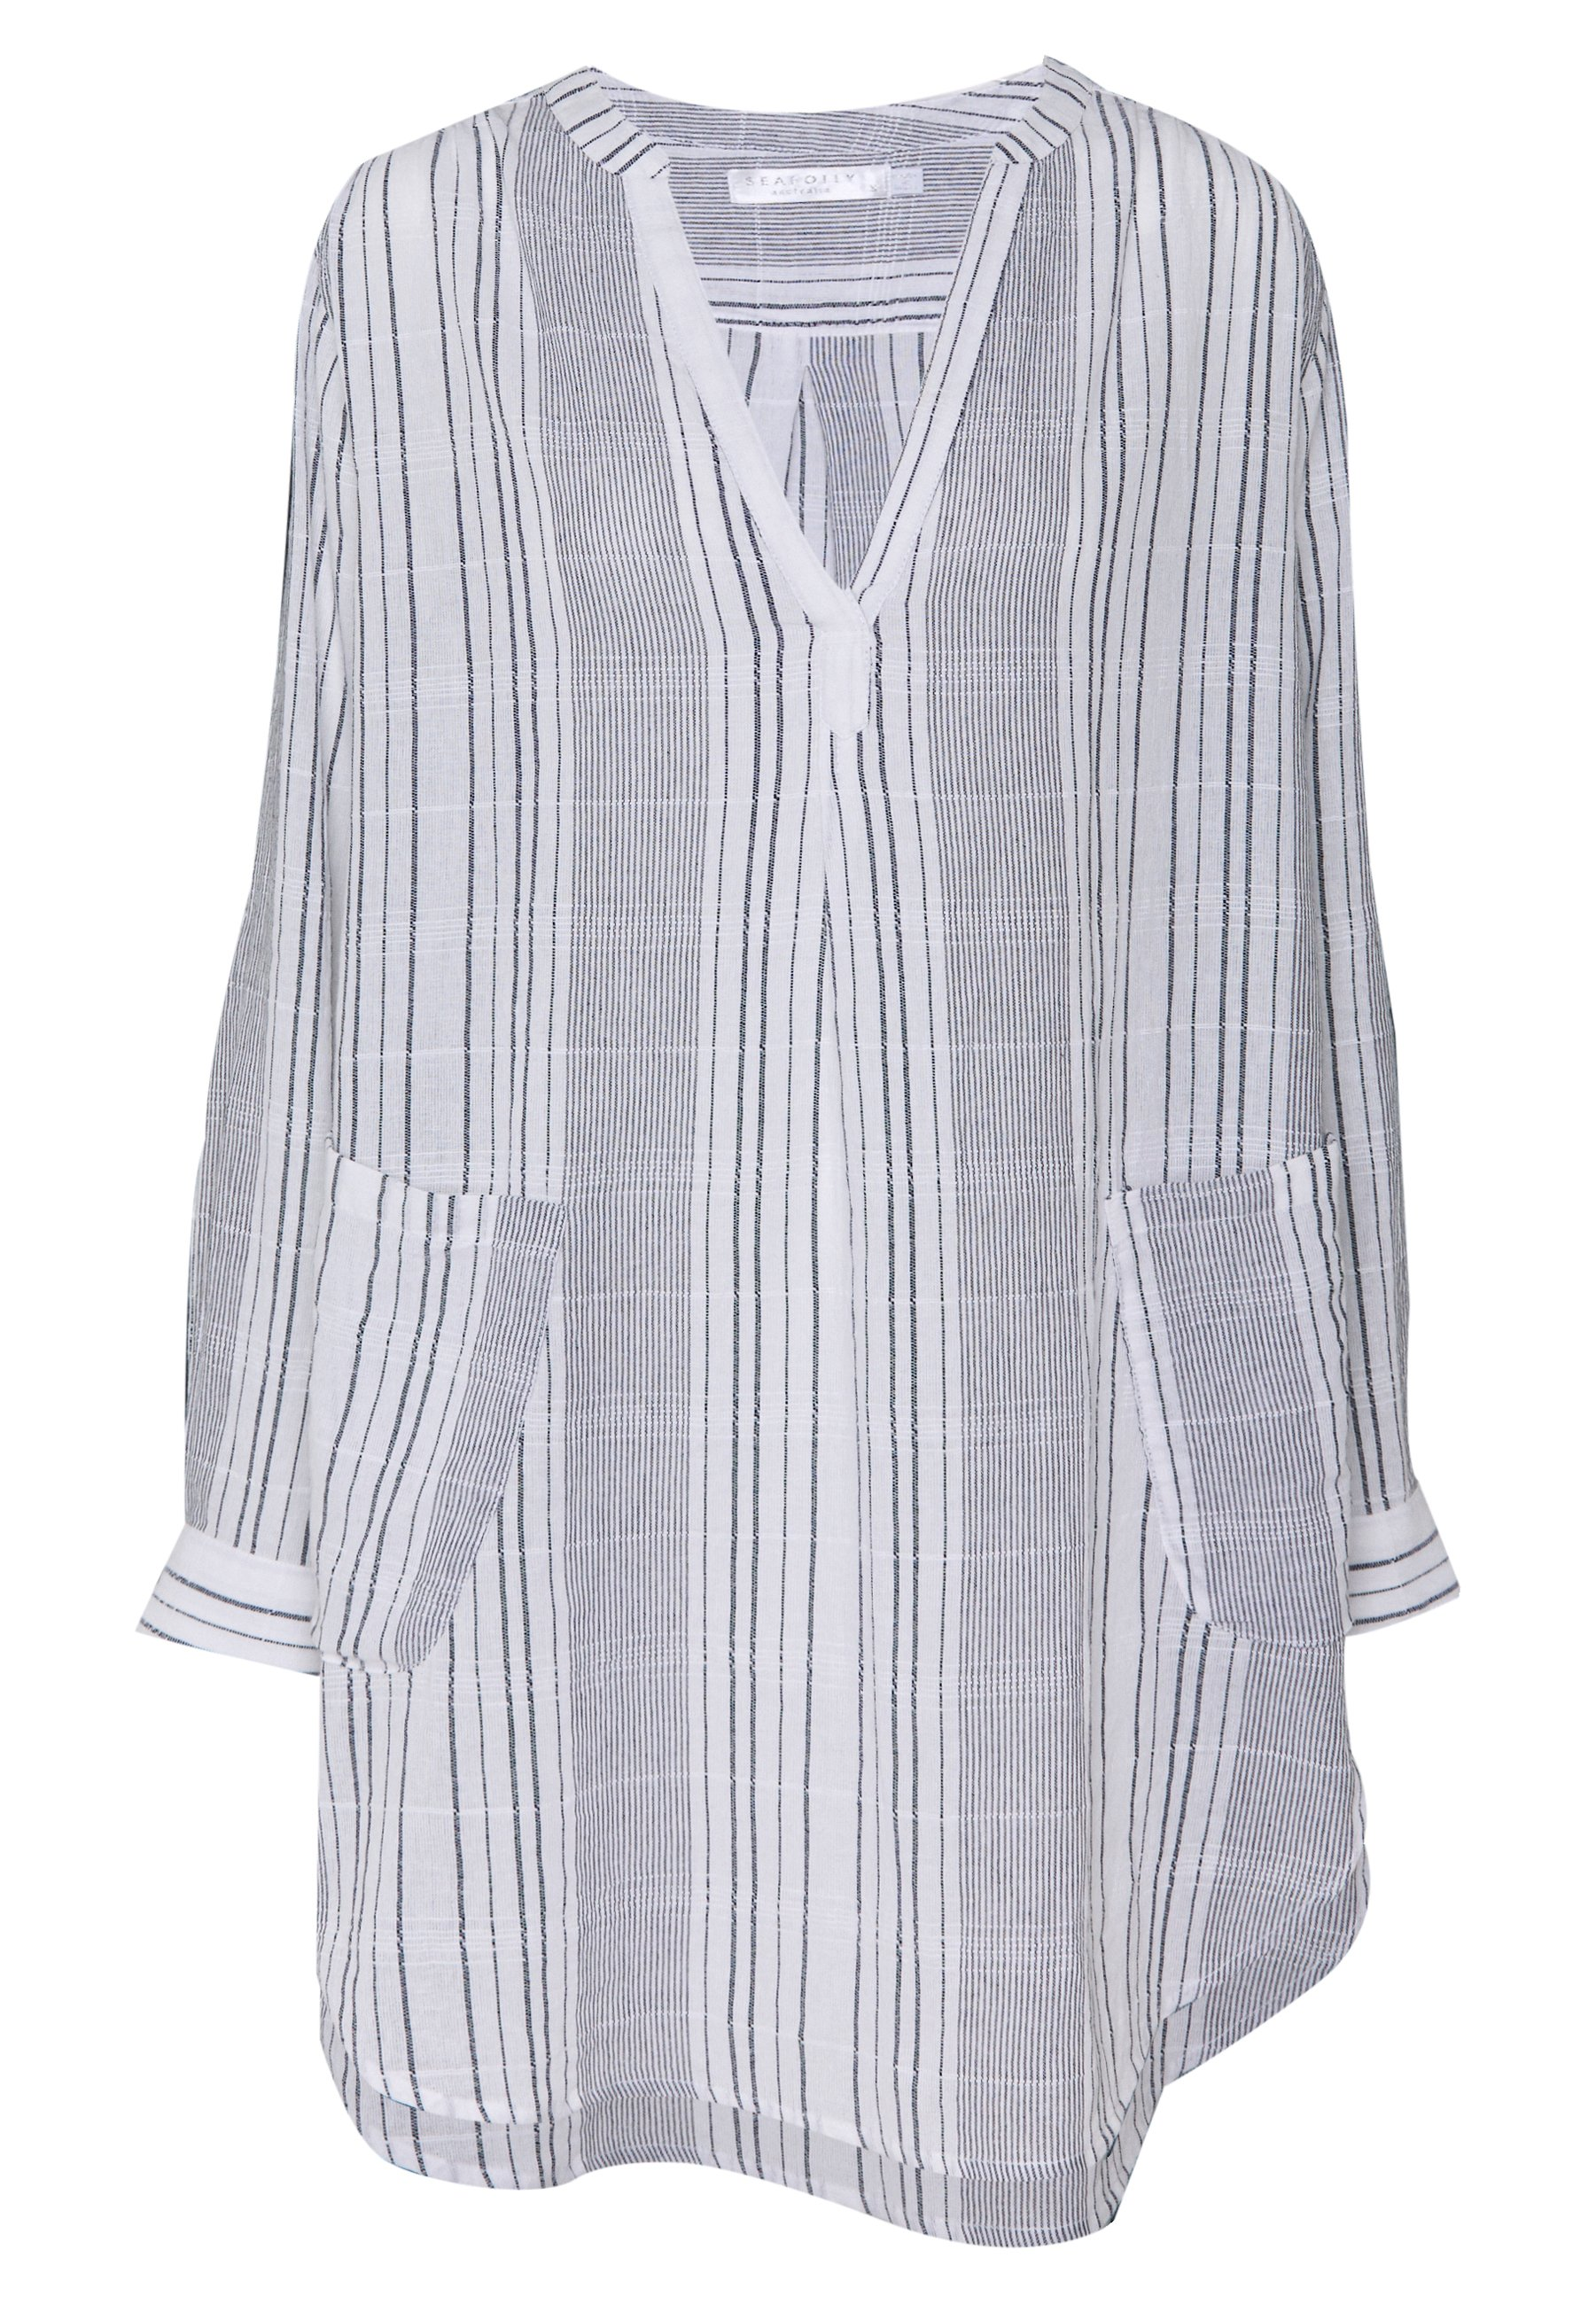 Seafolly Monastripe Cover Up - Strandaccessoar Black/white